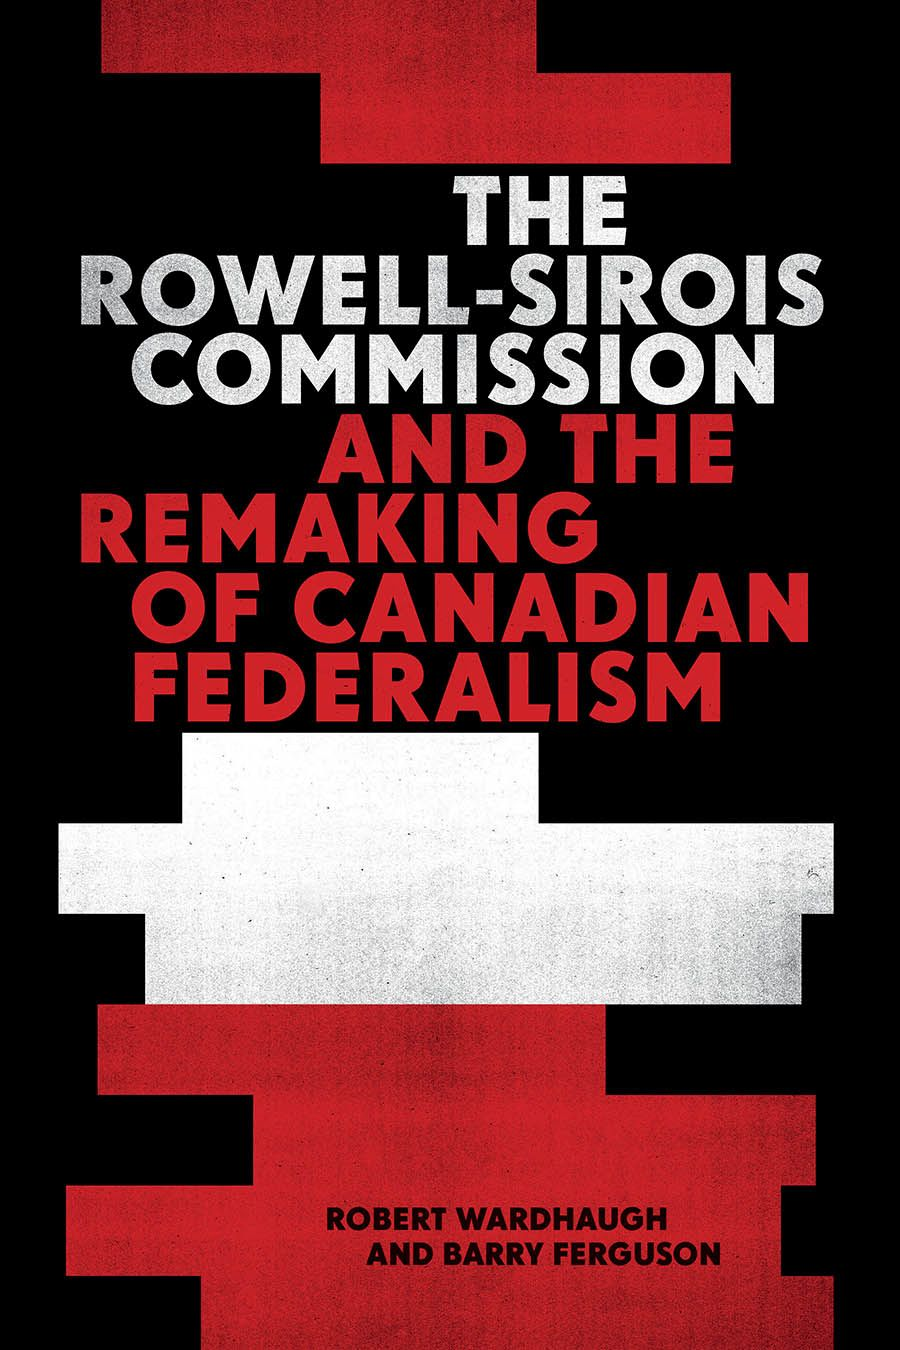 Rowell-Sirois Commission and the Remaking of Canadian